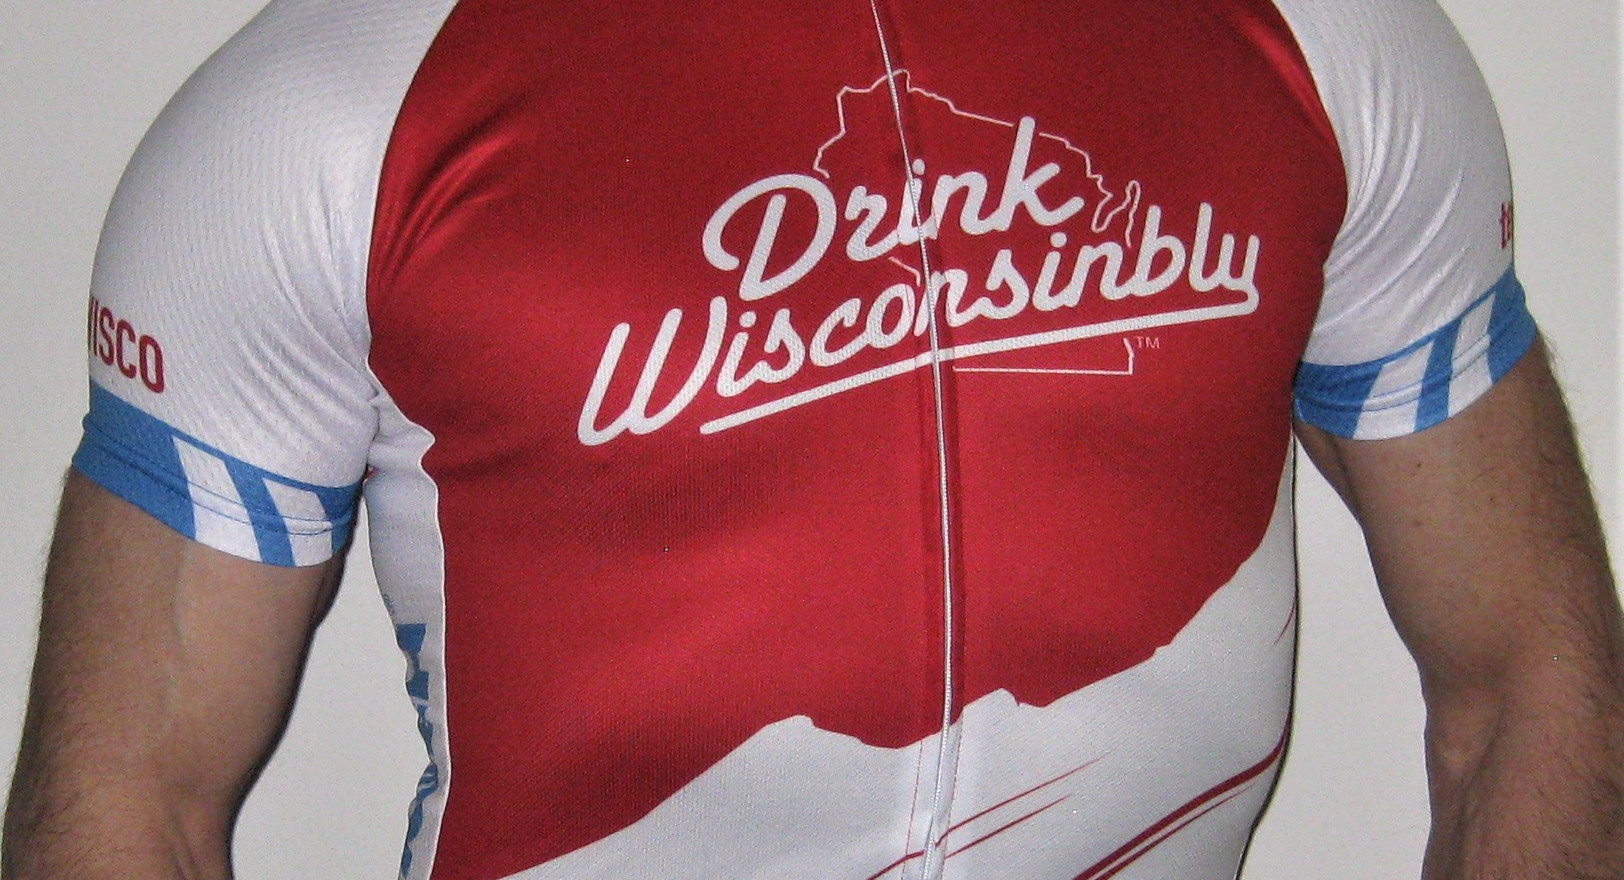 Drink Wisconsinbly Cuctom cycling jersey to support leukemia lymphoma at the Scenic Shore 150 Bike Tour